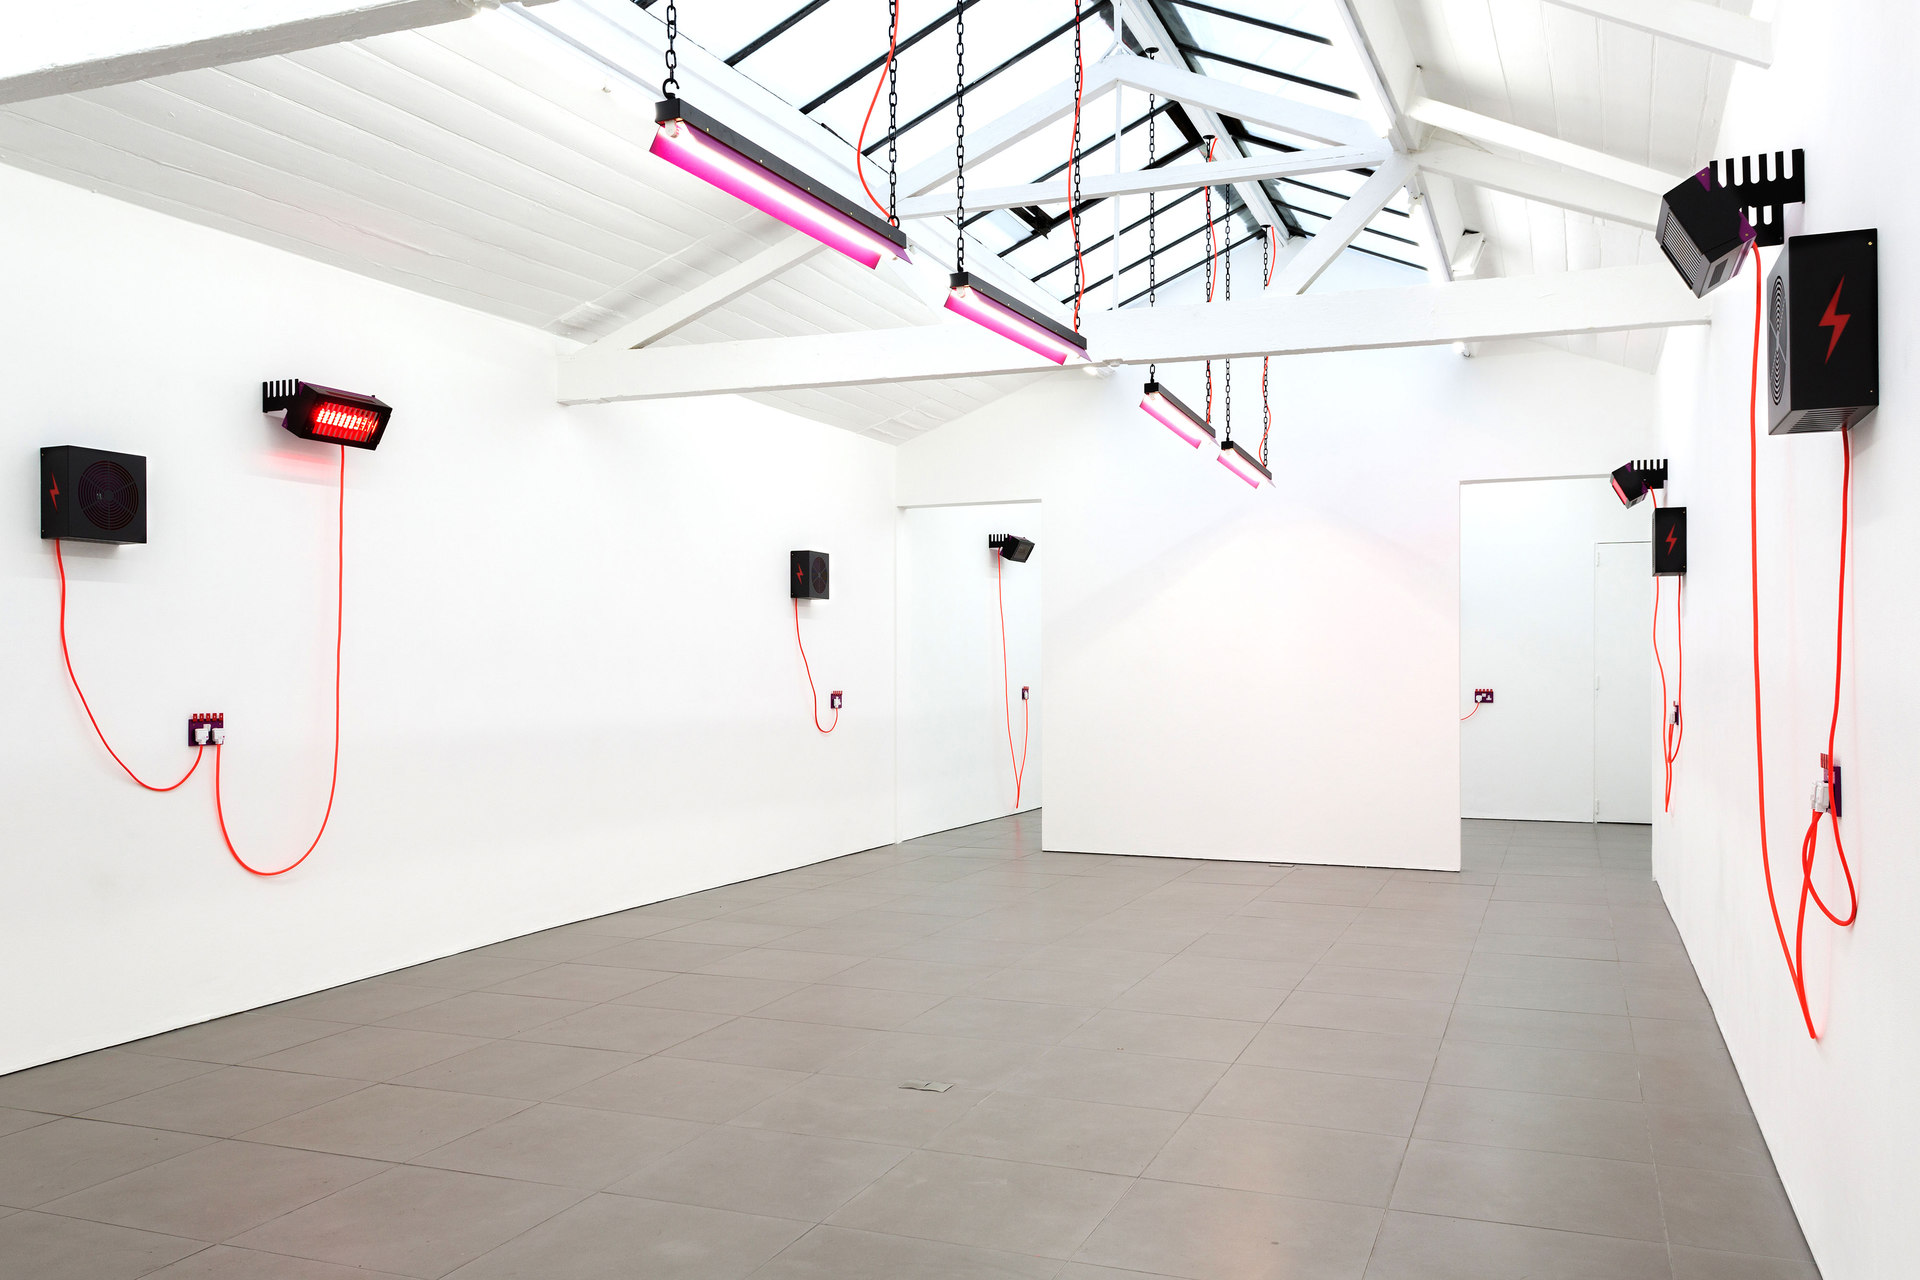 Natalie Dray, DRAY, 2015, installation view, Cell Project Space